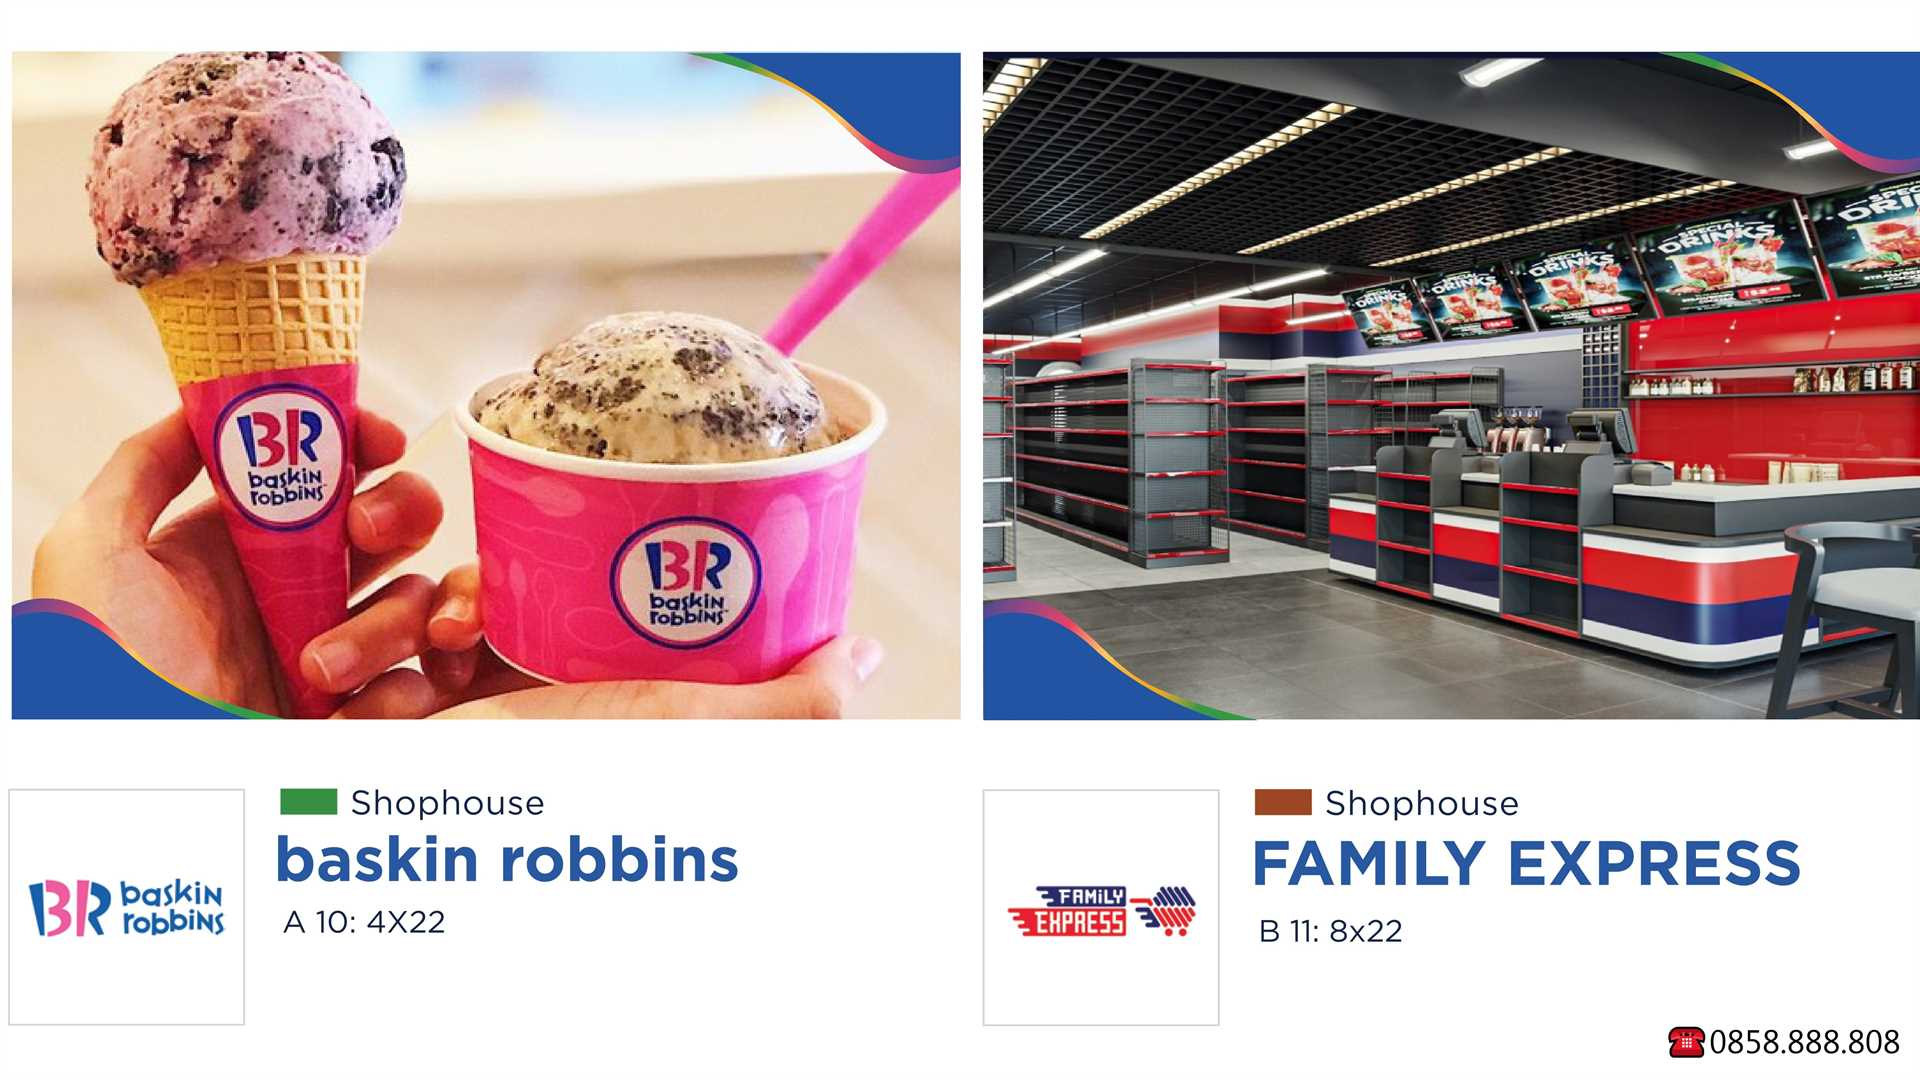 kem-tuoi-baskin-robbins-family-express-cua-hang-shophouse-novaworld-phan-thiet-mat-bien